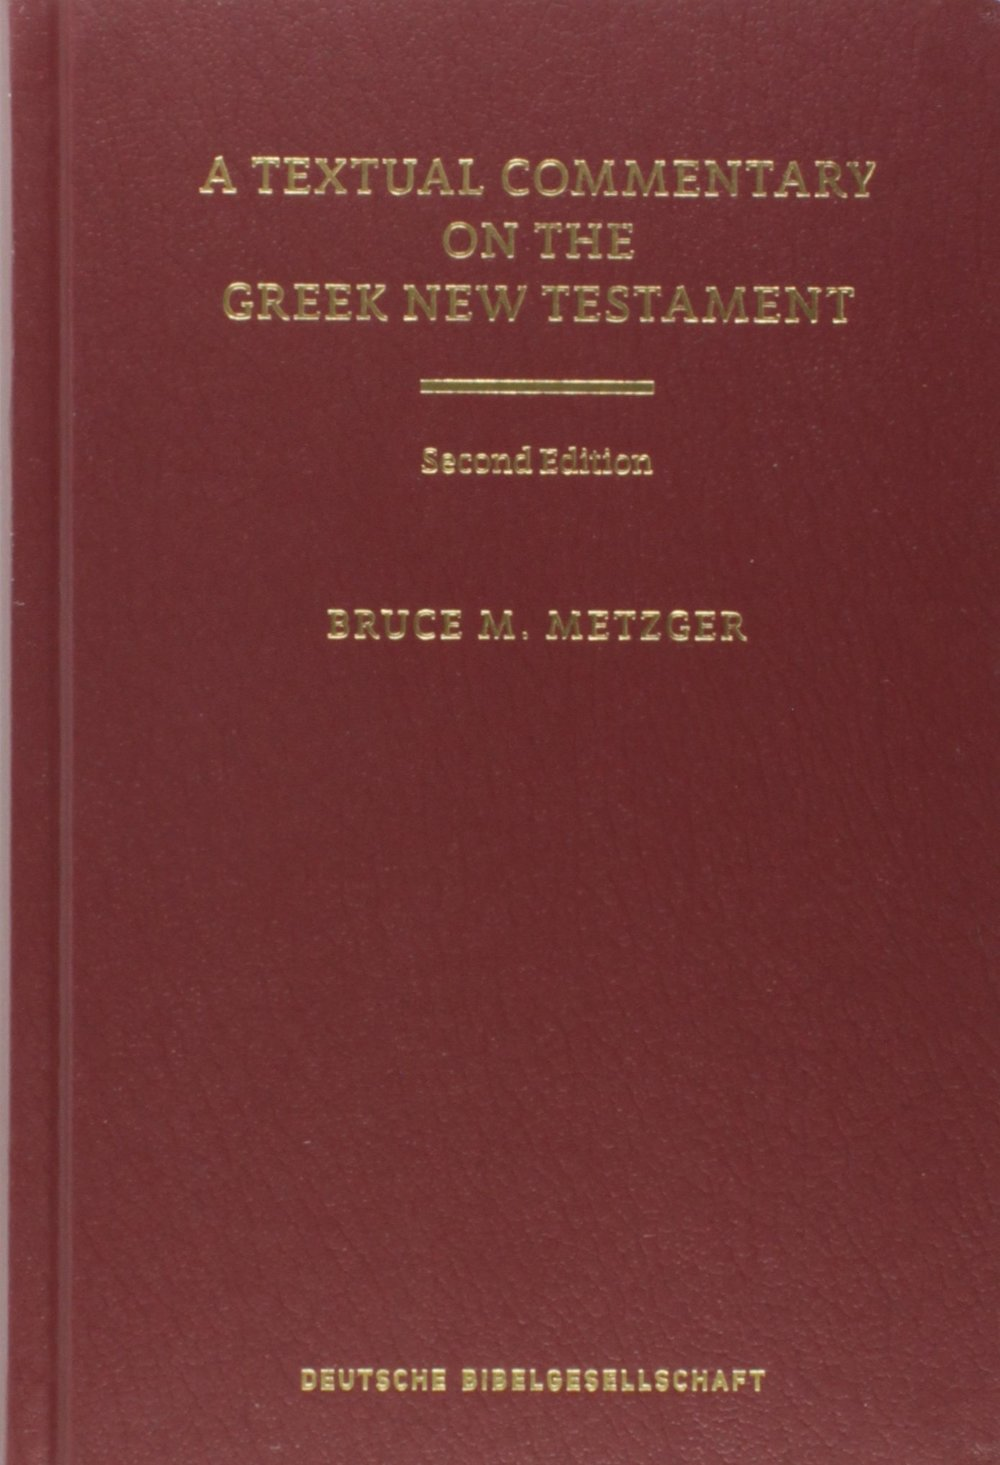 textual commentary Greek NT - metzger.jpg